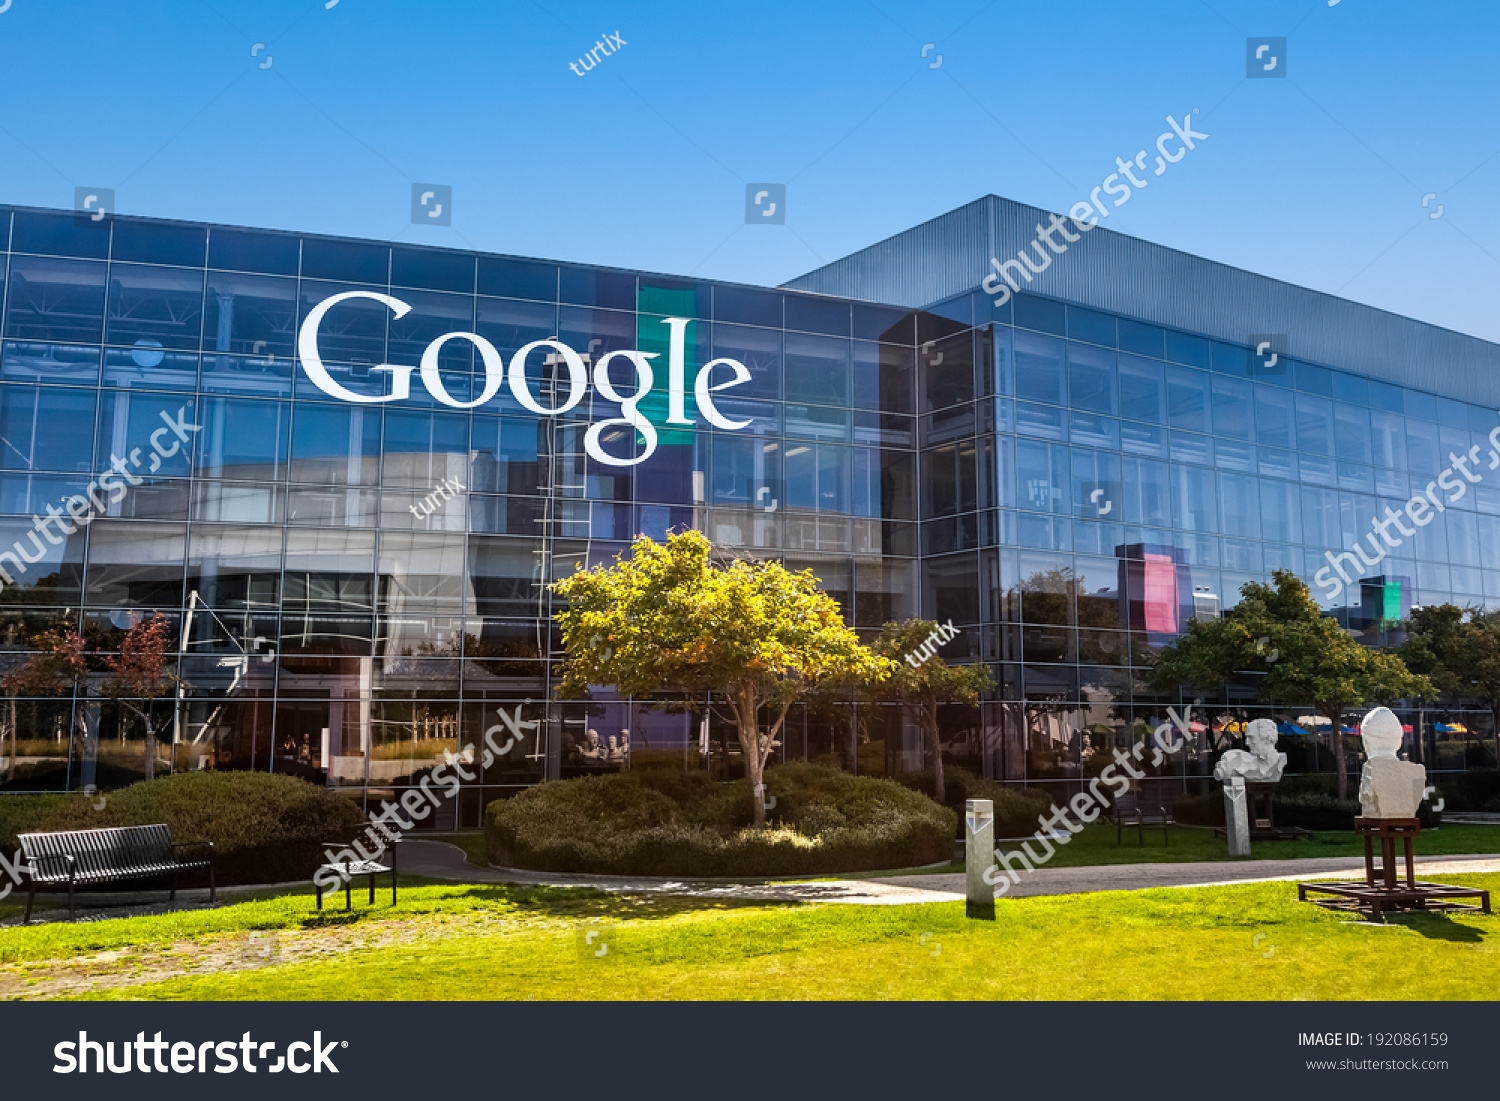 Mountain view causa october 12 2013 stock photo 192086159 for Exterior view of building